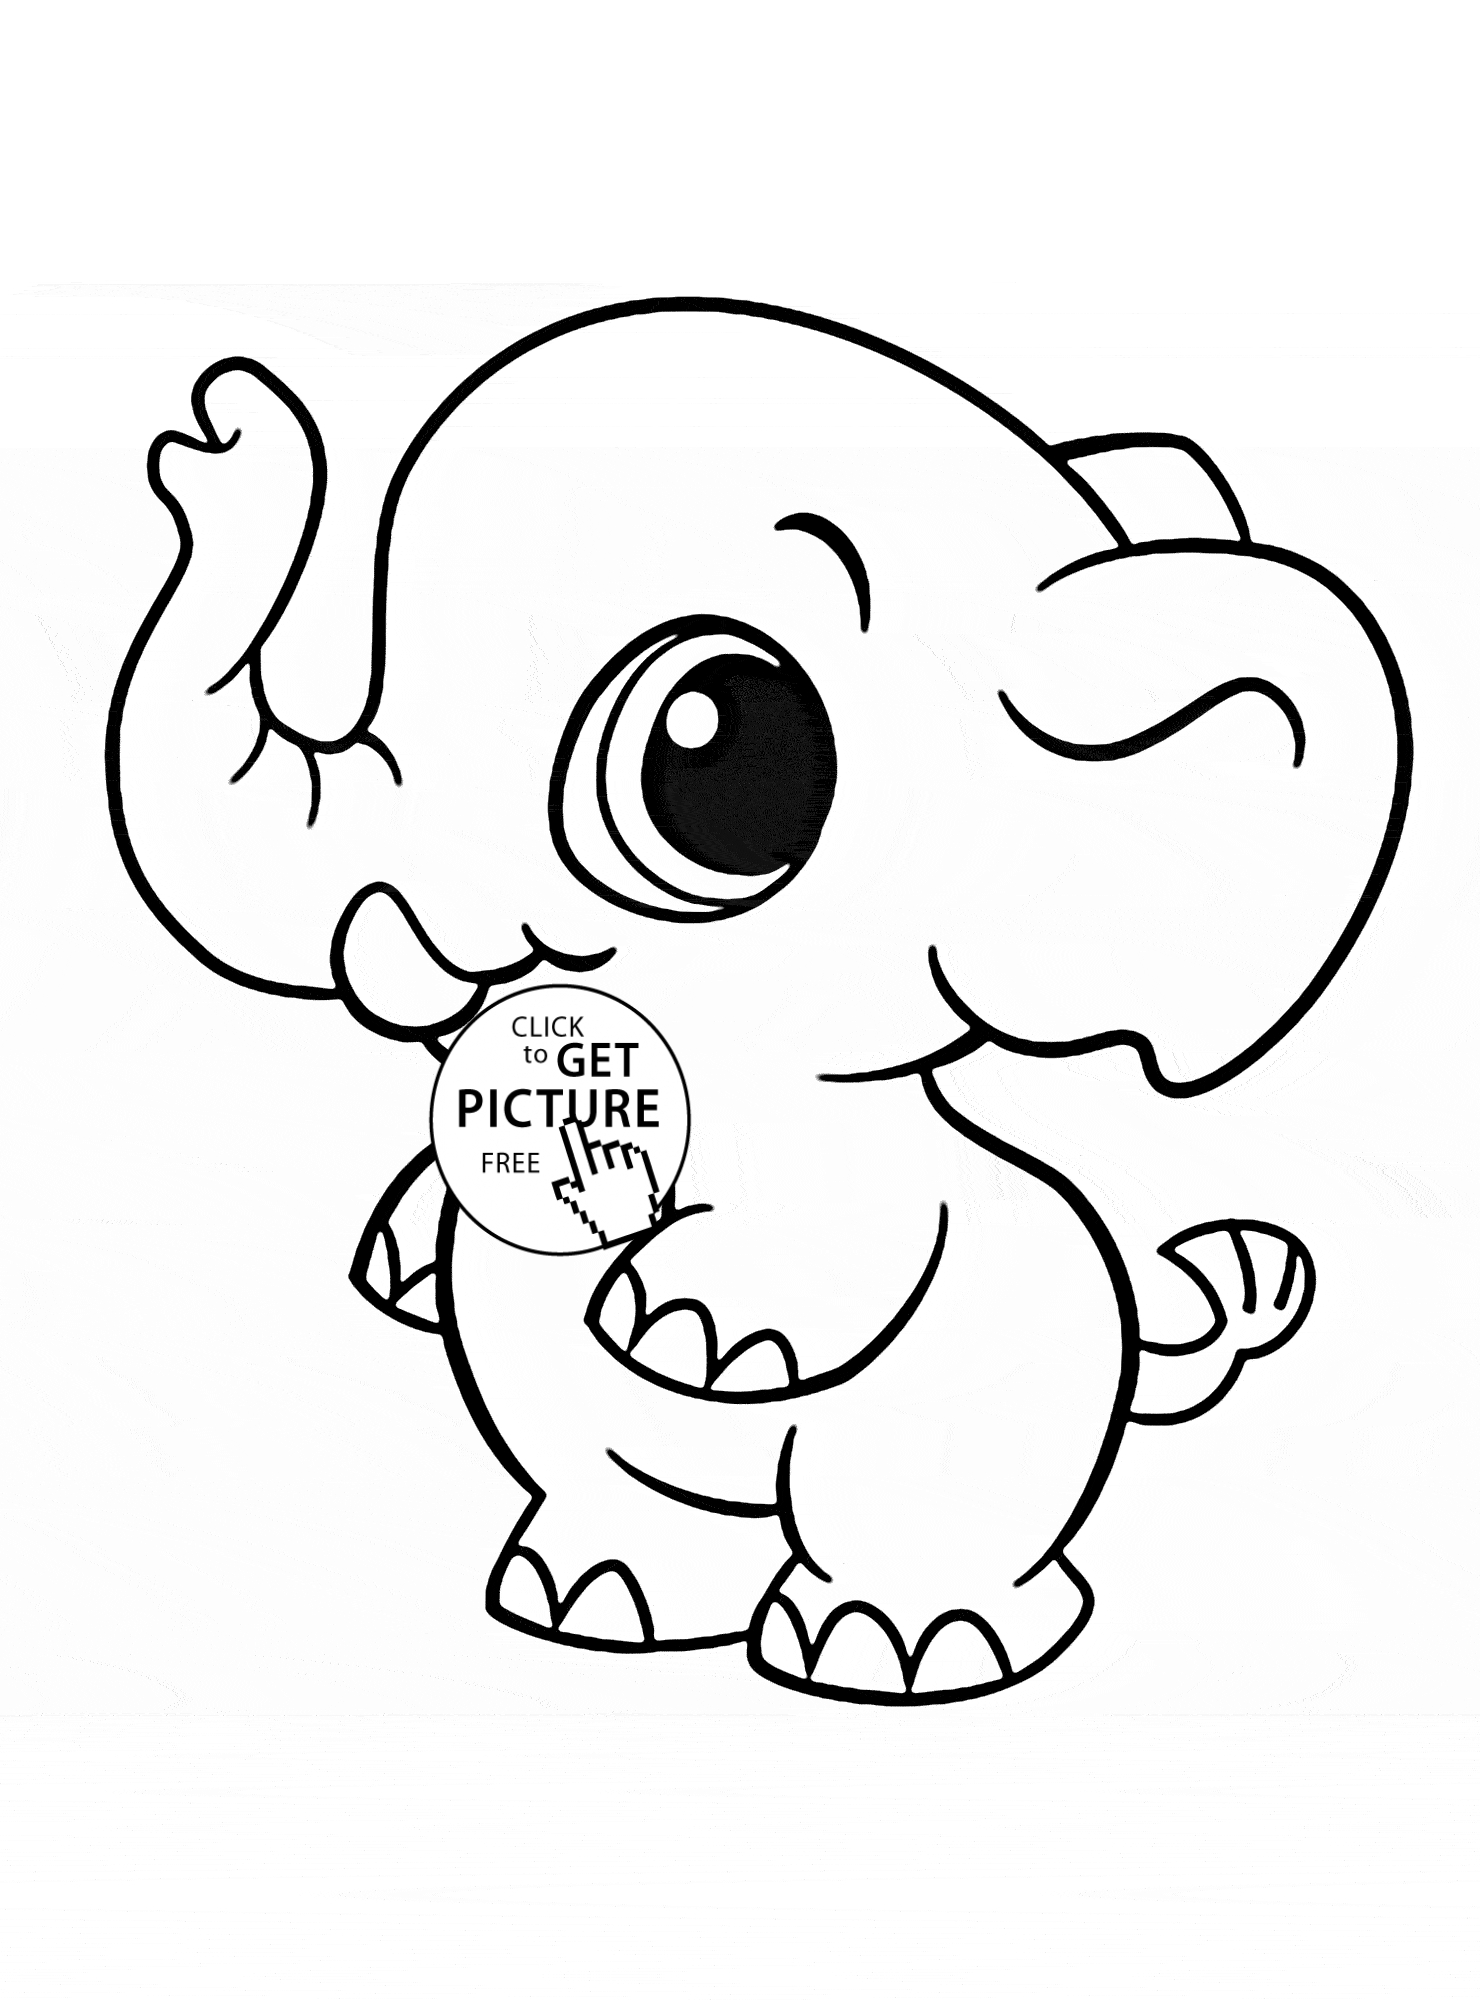 little kid coloring pages - little elephant animal coloring page for kids animal coloring pages printables free